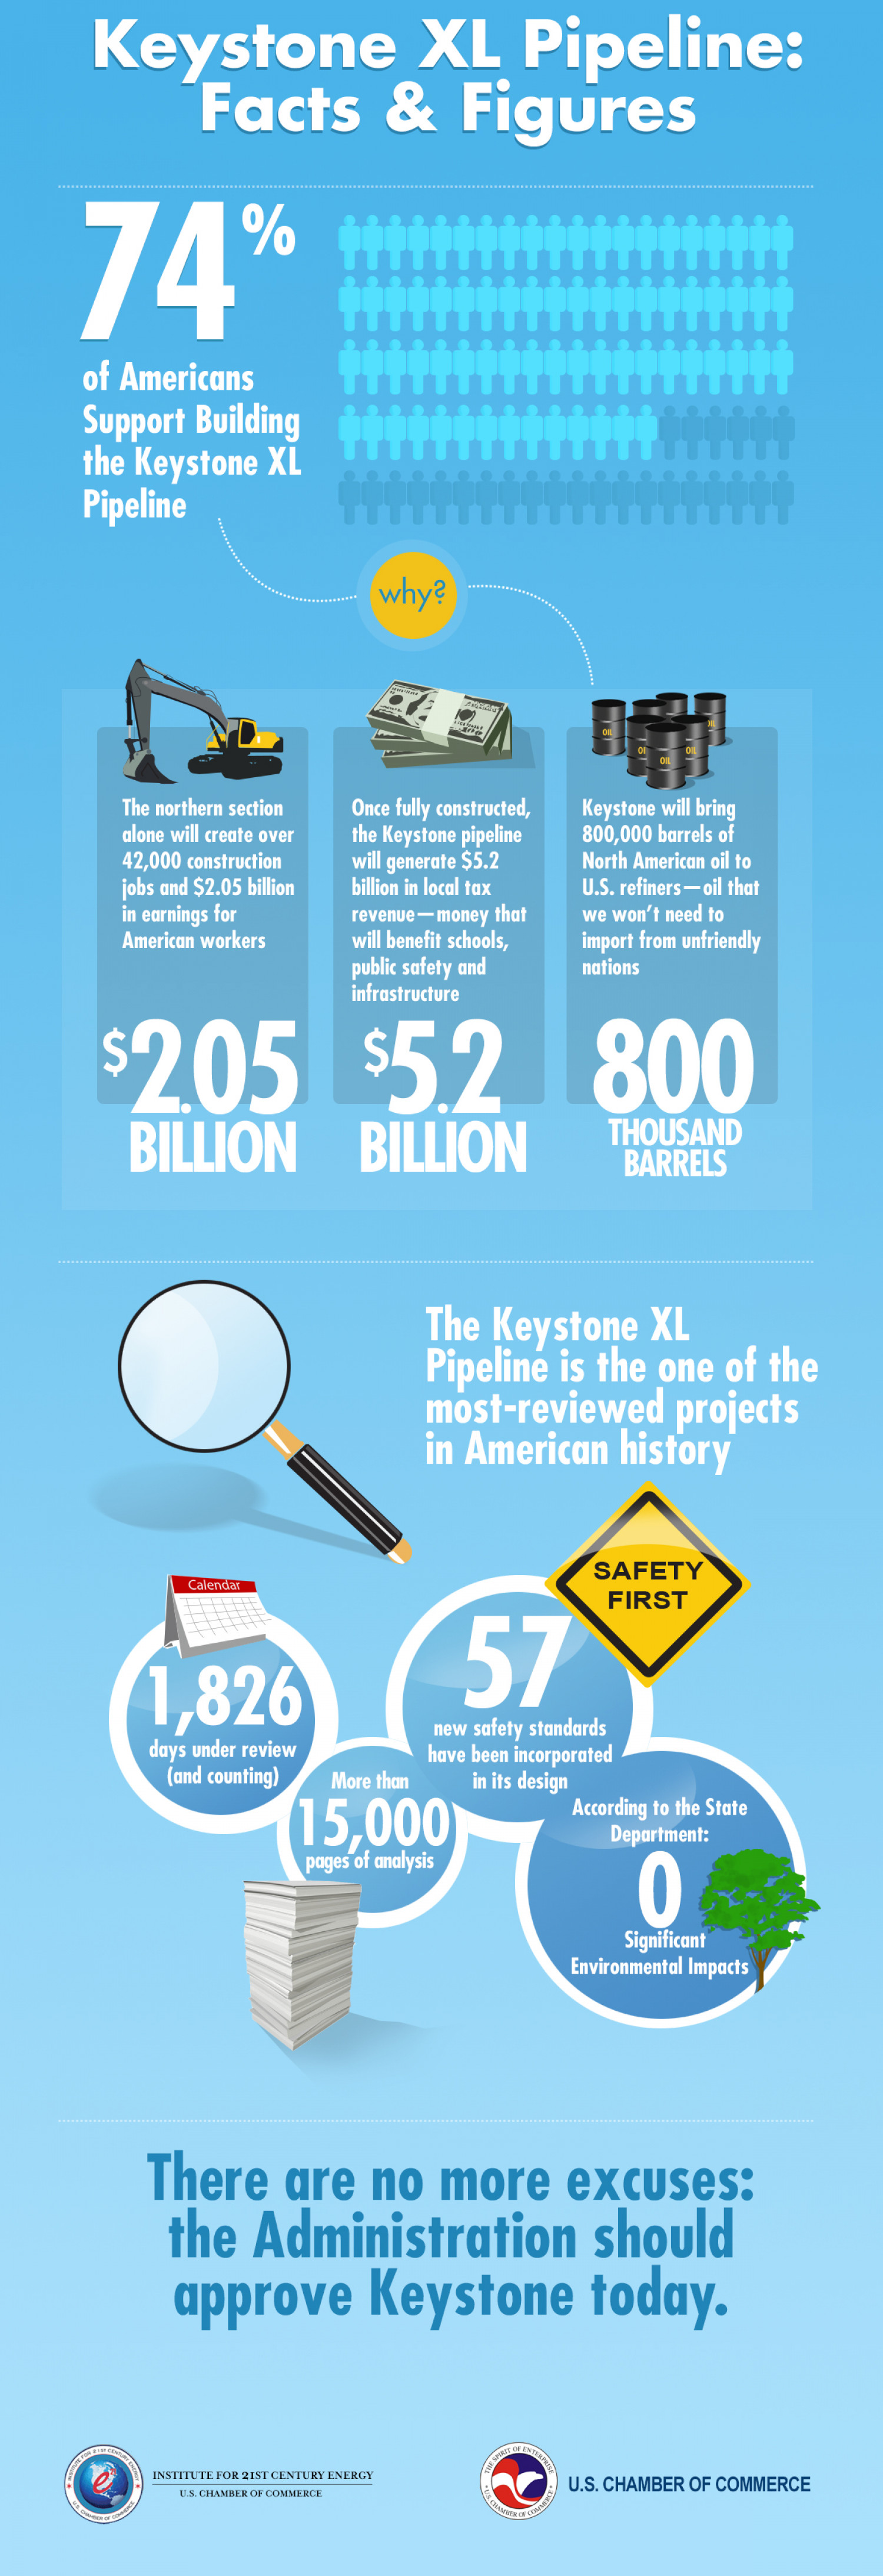 Keystone XL Pipeline Facts and Figures  Infographic